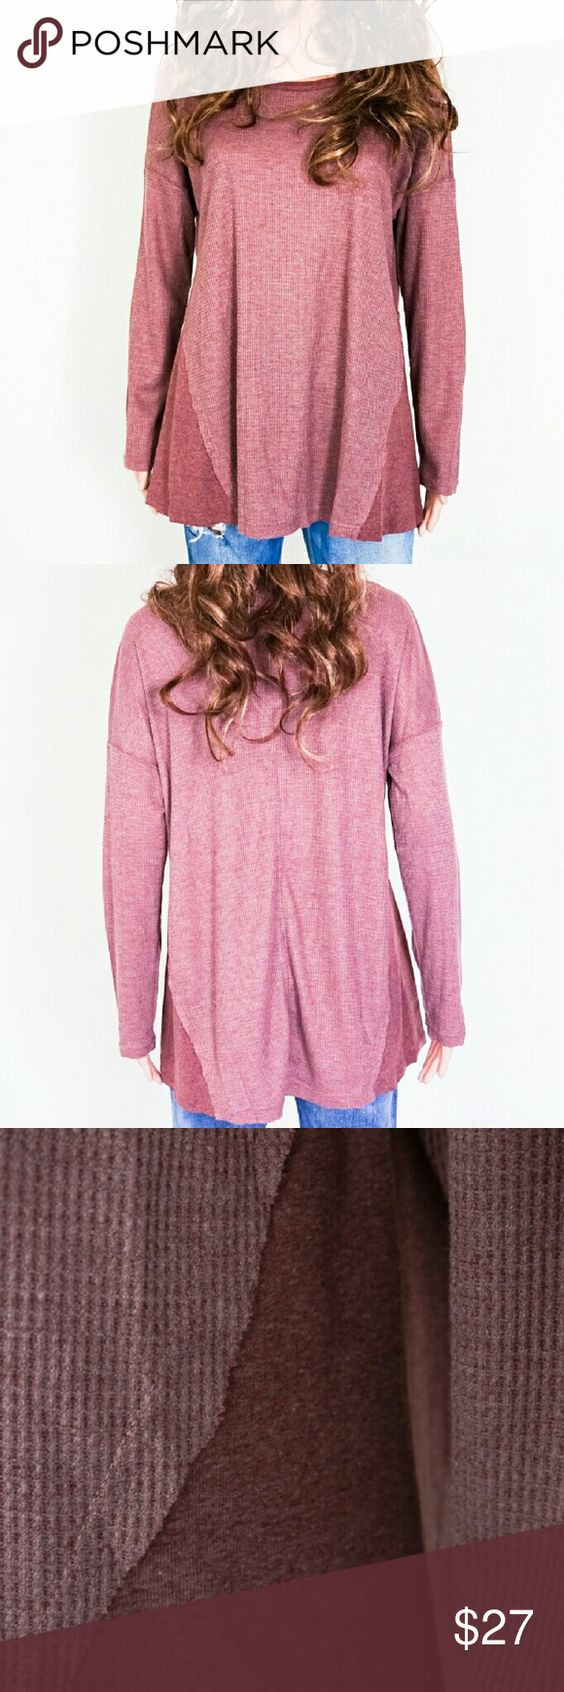 Wine Colored Knit Top Available in Size S, M, L. Fabric content: 65% polyester, 35% rayon. Same day shipping. 20% bundle discount for 3 items. Tops